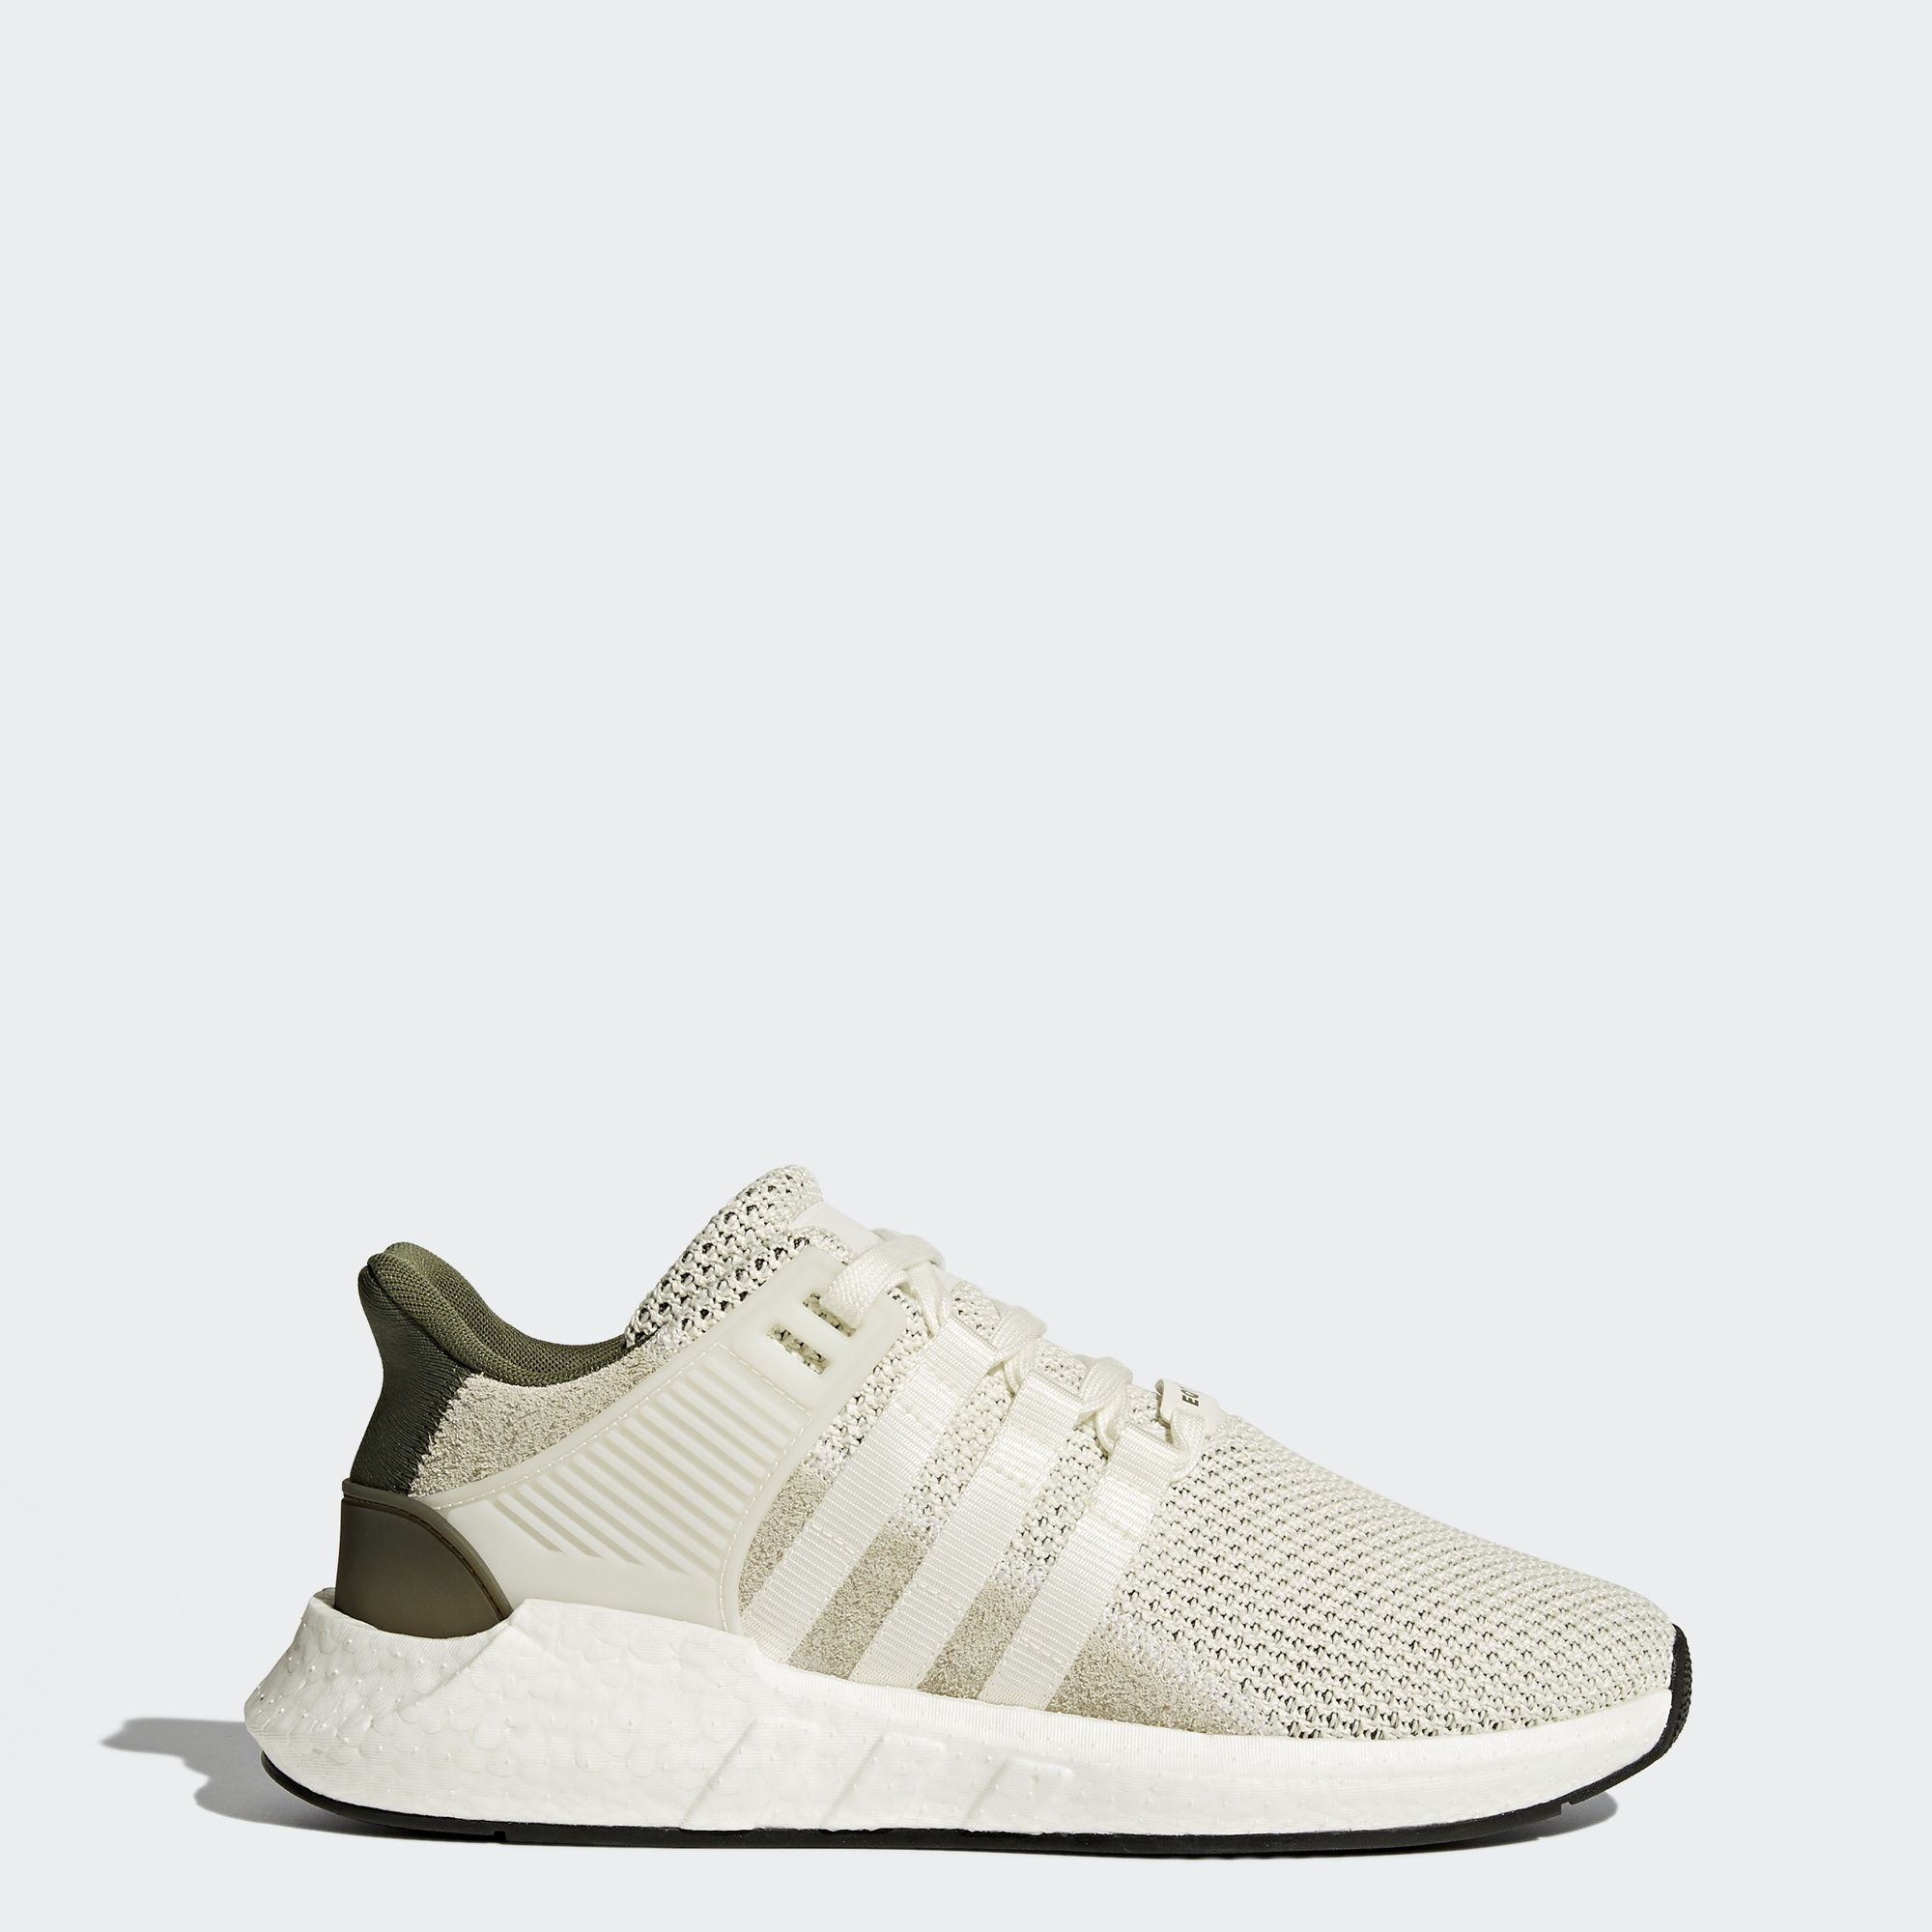 d20c7470f488b ... switzerland adidas eqt support 93 17 shoes mens white ebay 7a2b6 dda11  ...